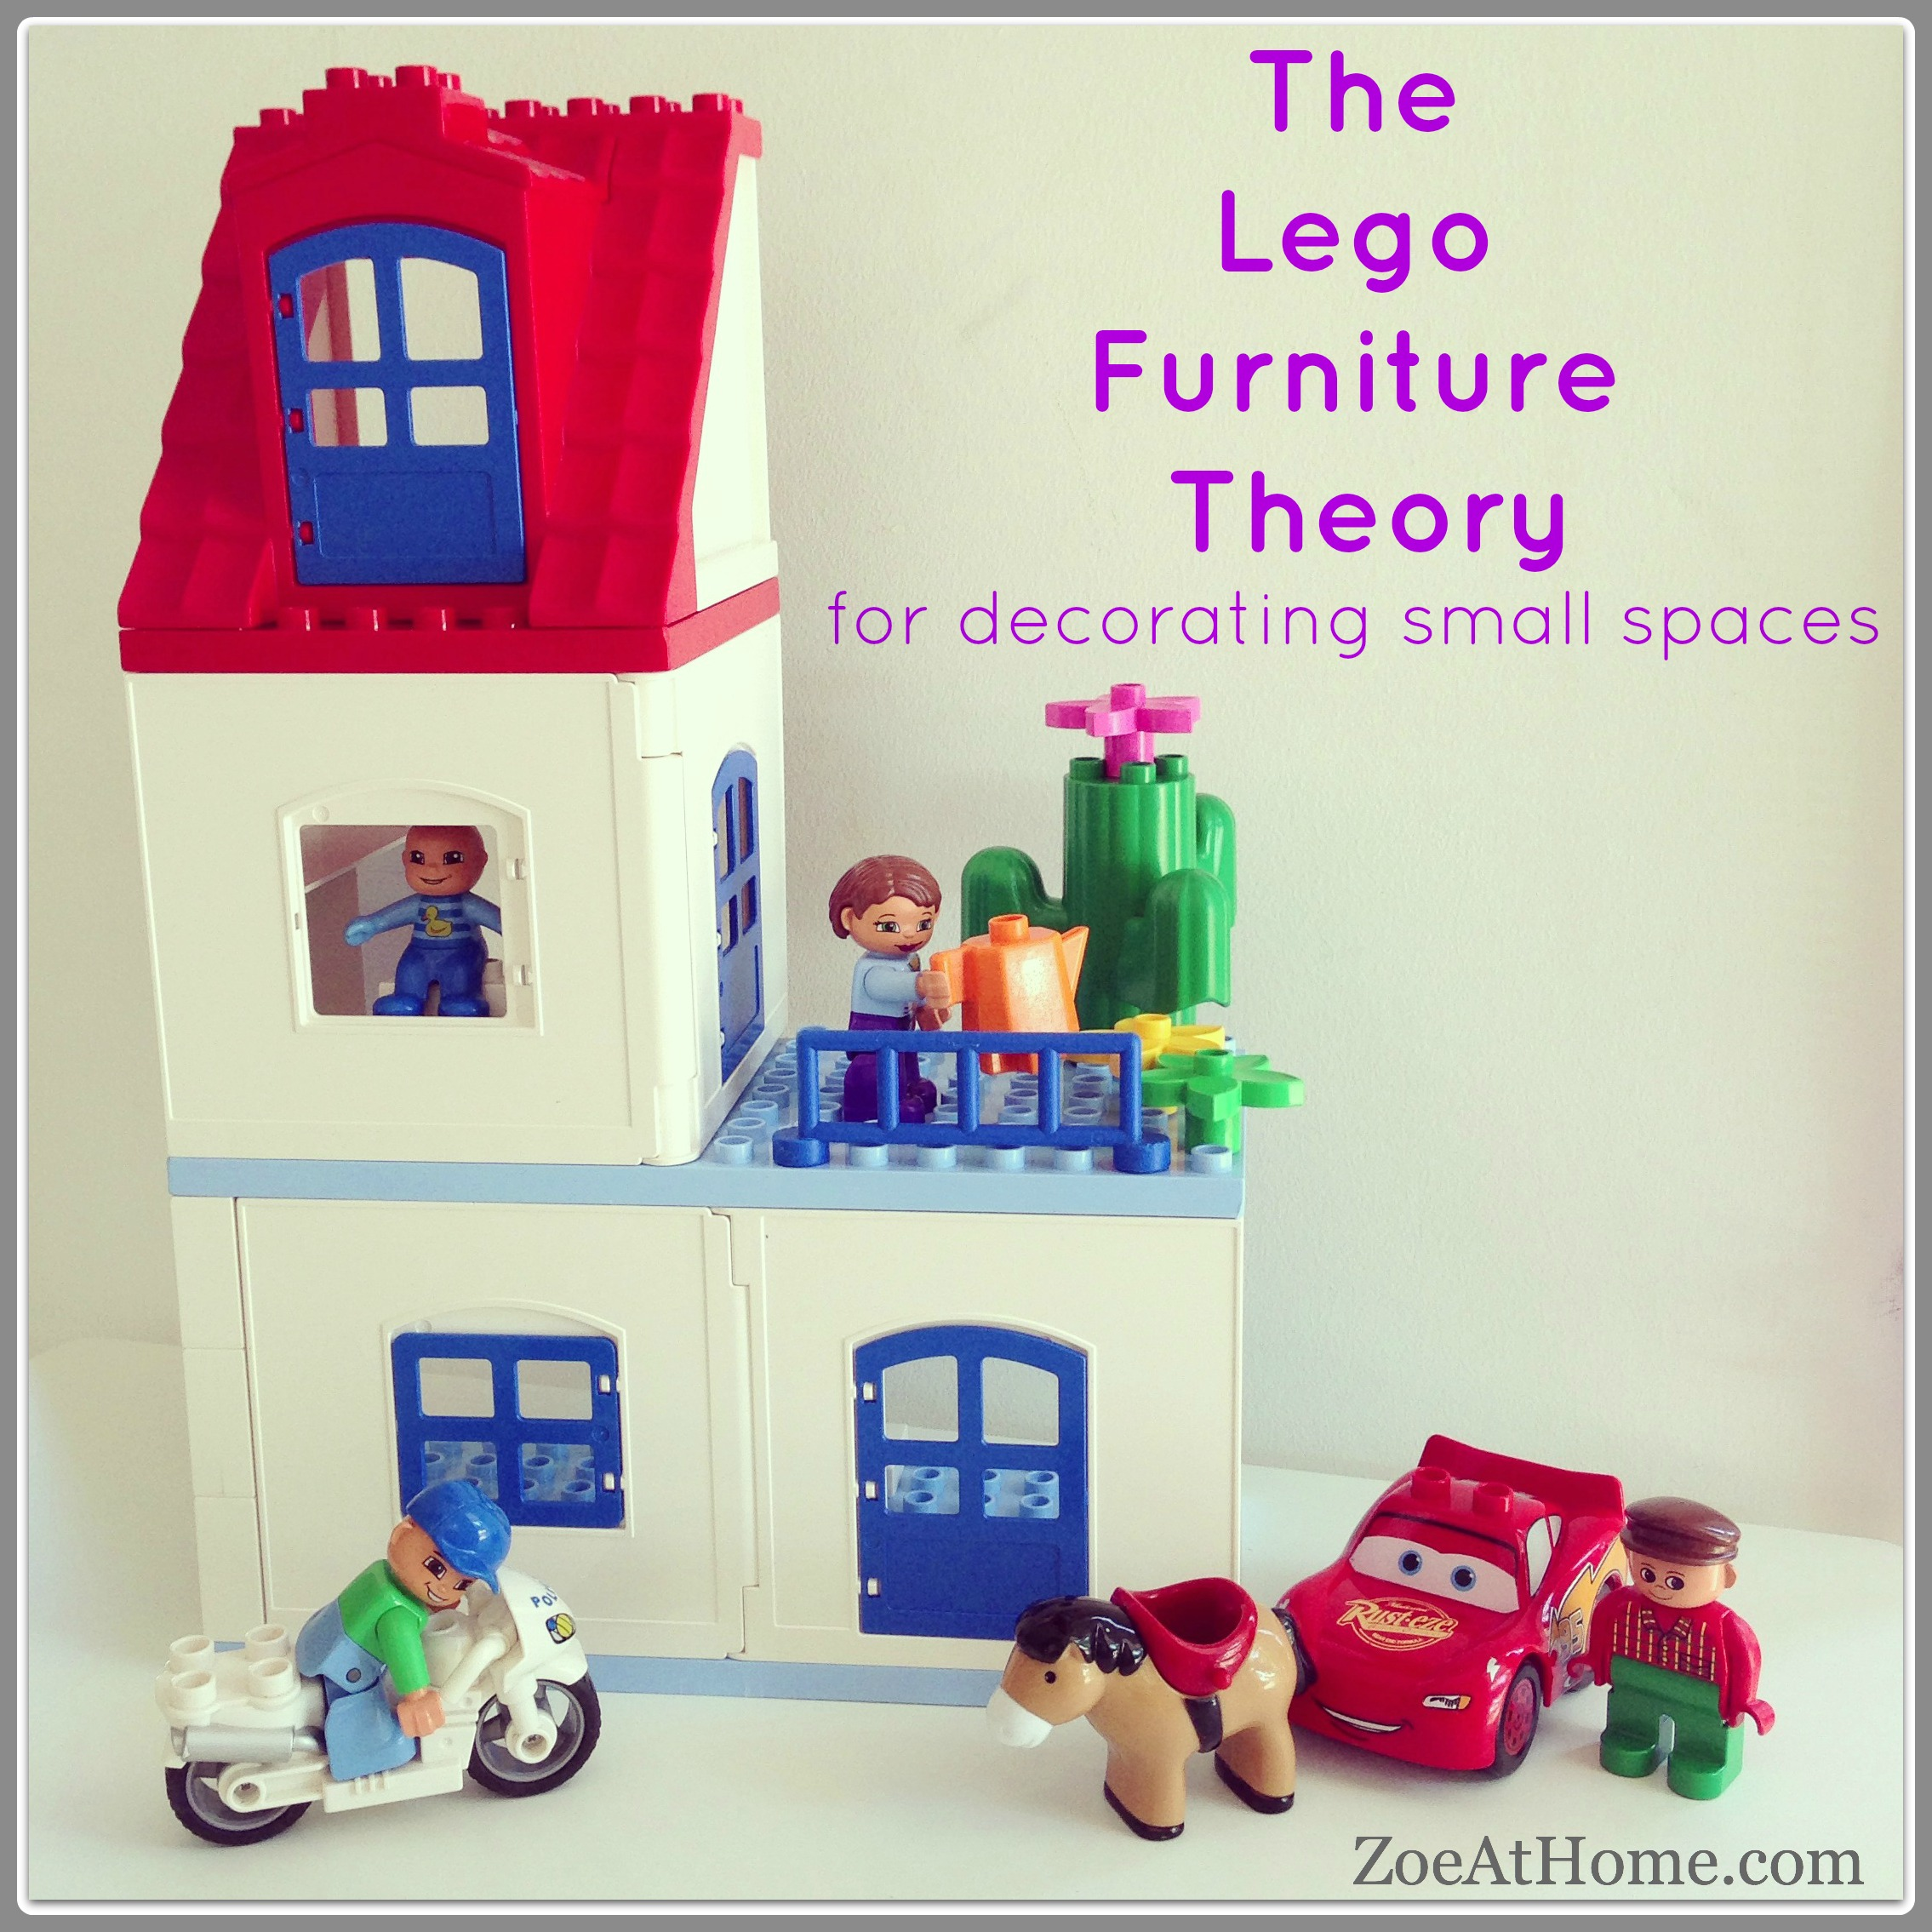 theory part cupboard my space spaces legoftbutton furniture zoeathome lego com small living for decorating